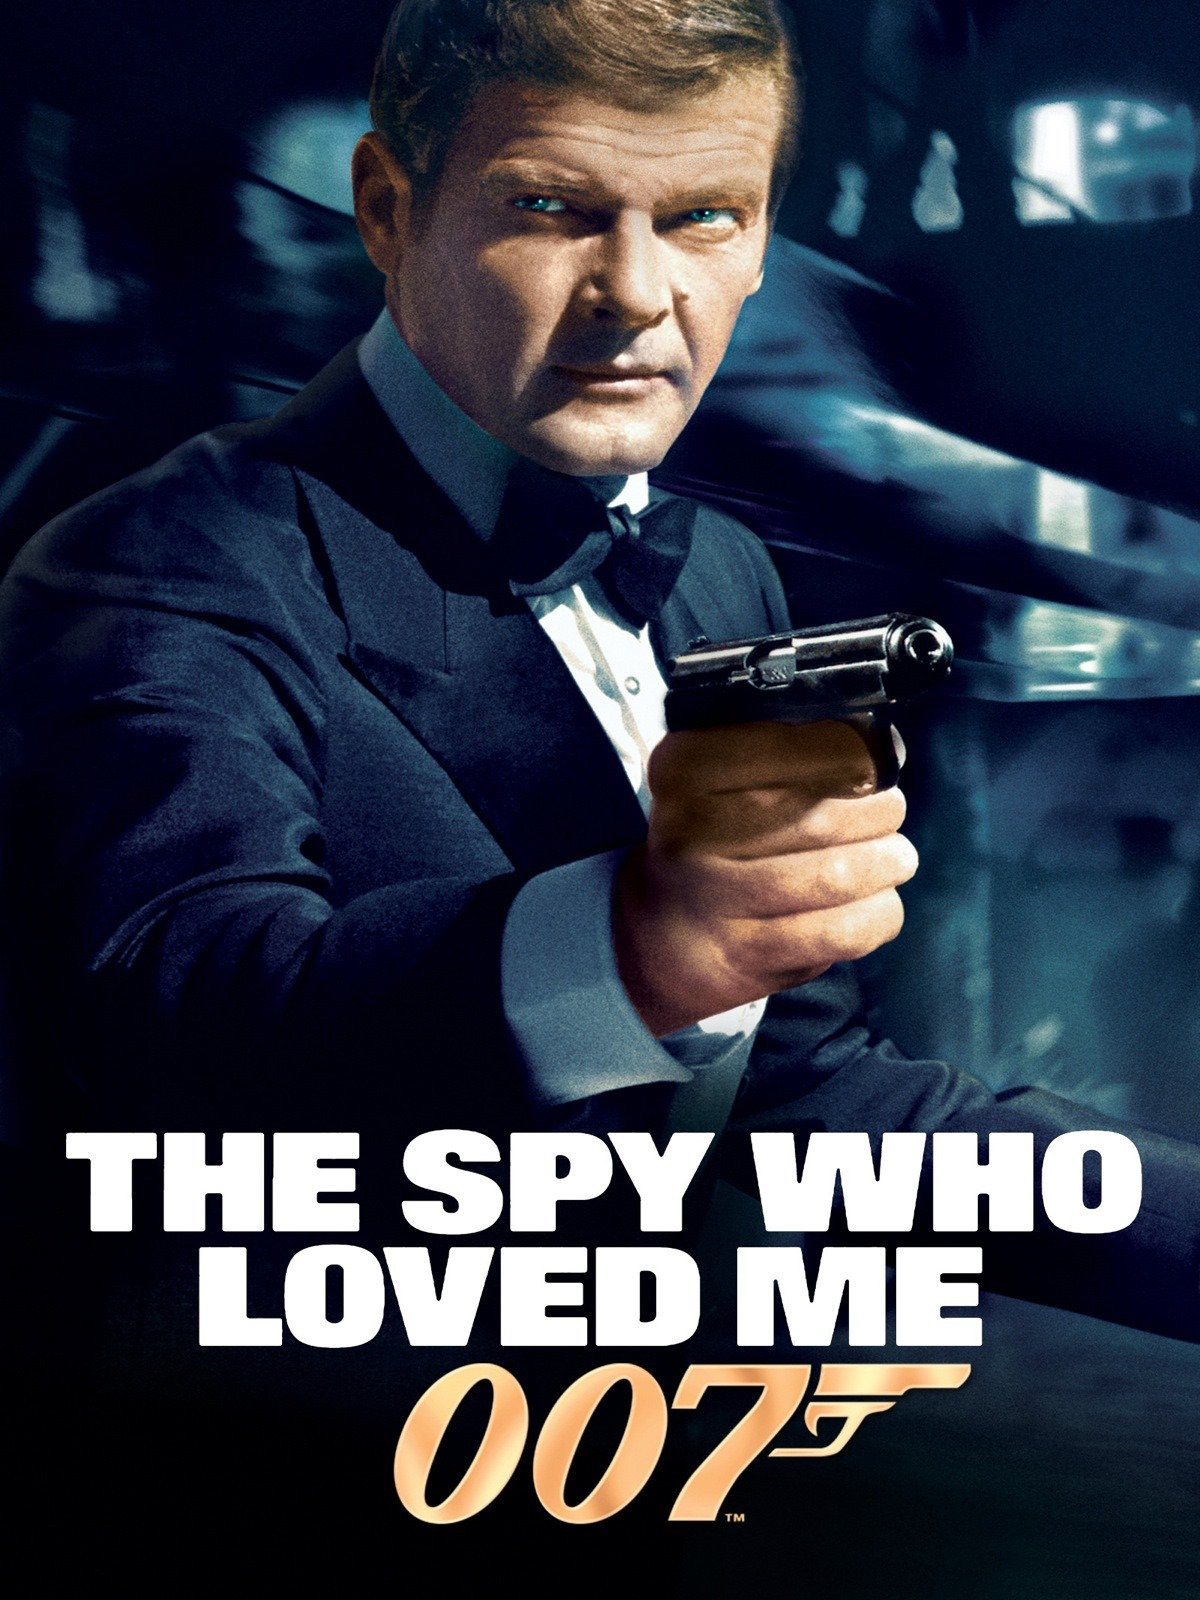 The Spy Who Loved Me Watch online now with Amazon Instant Video